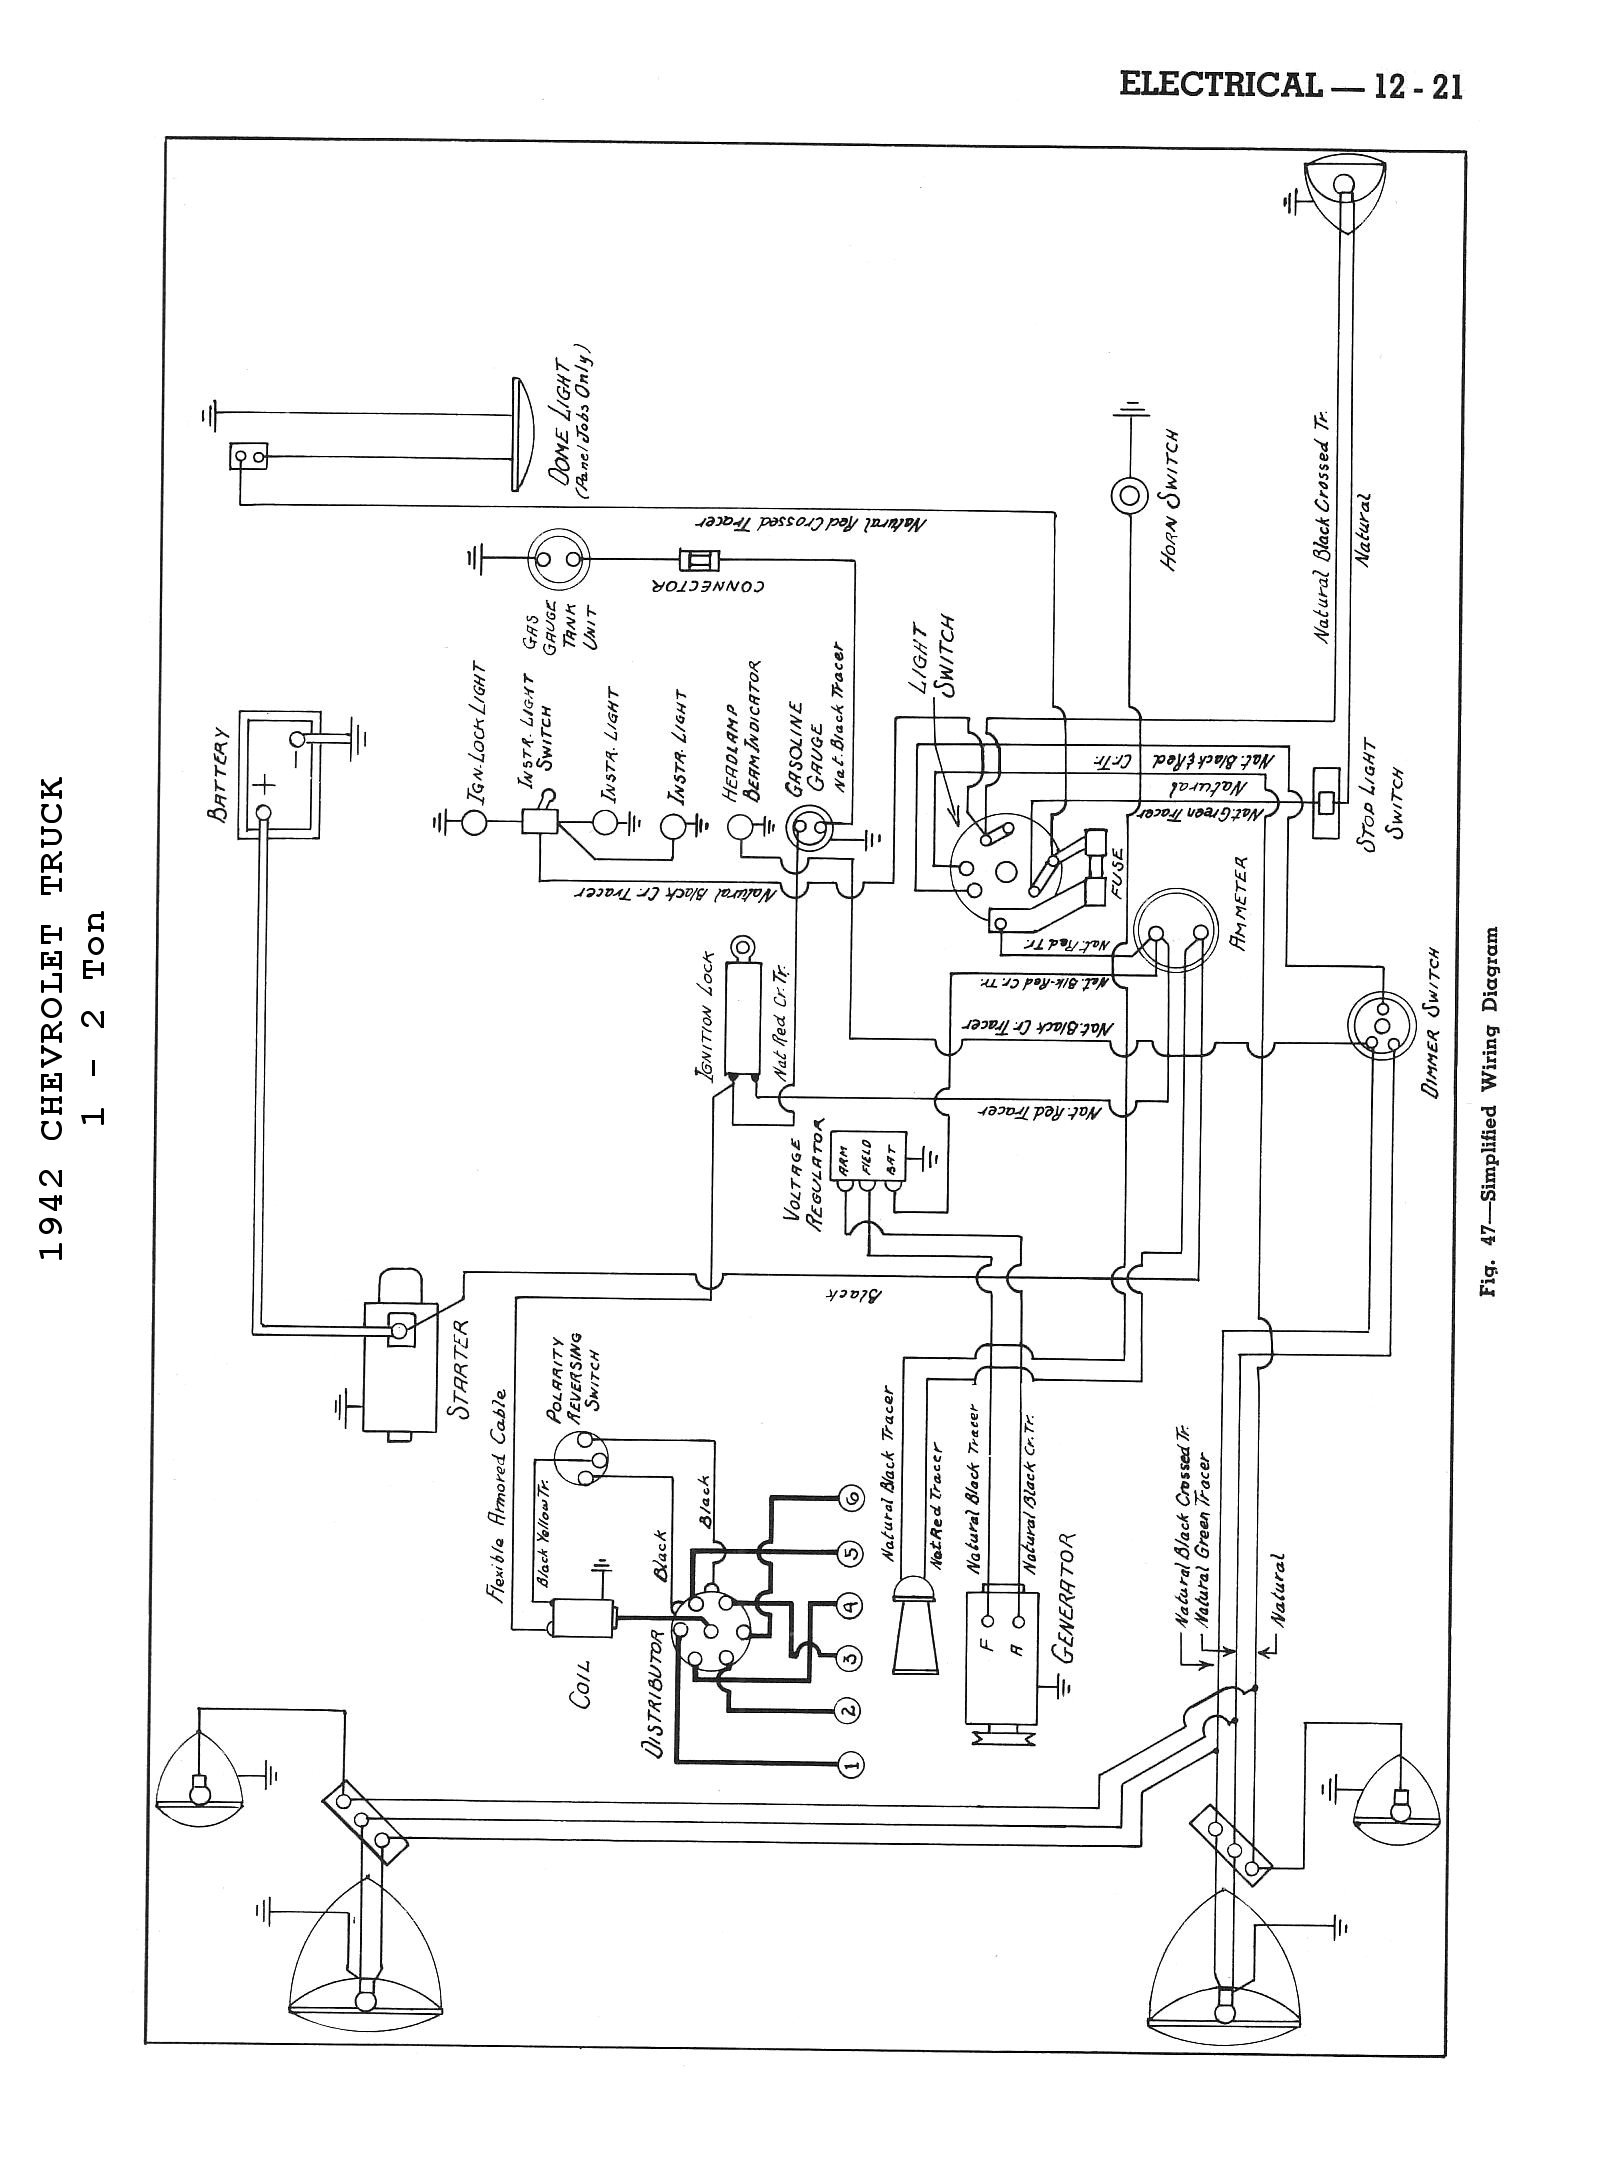 1950 studebaker champion wiring diagram  1950  free engine